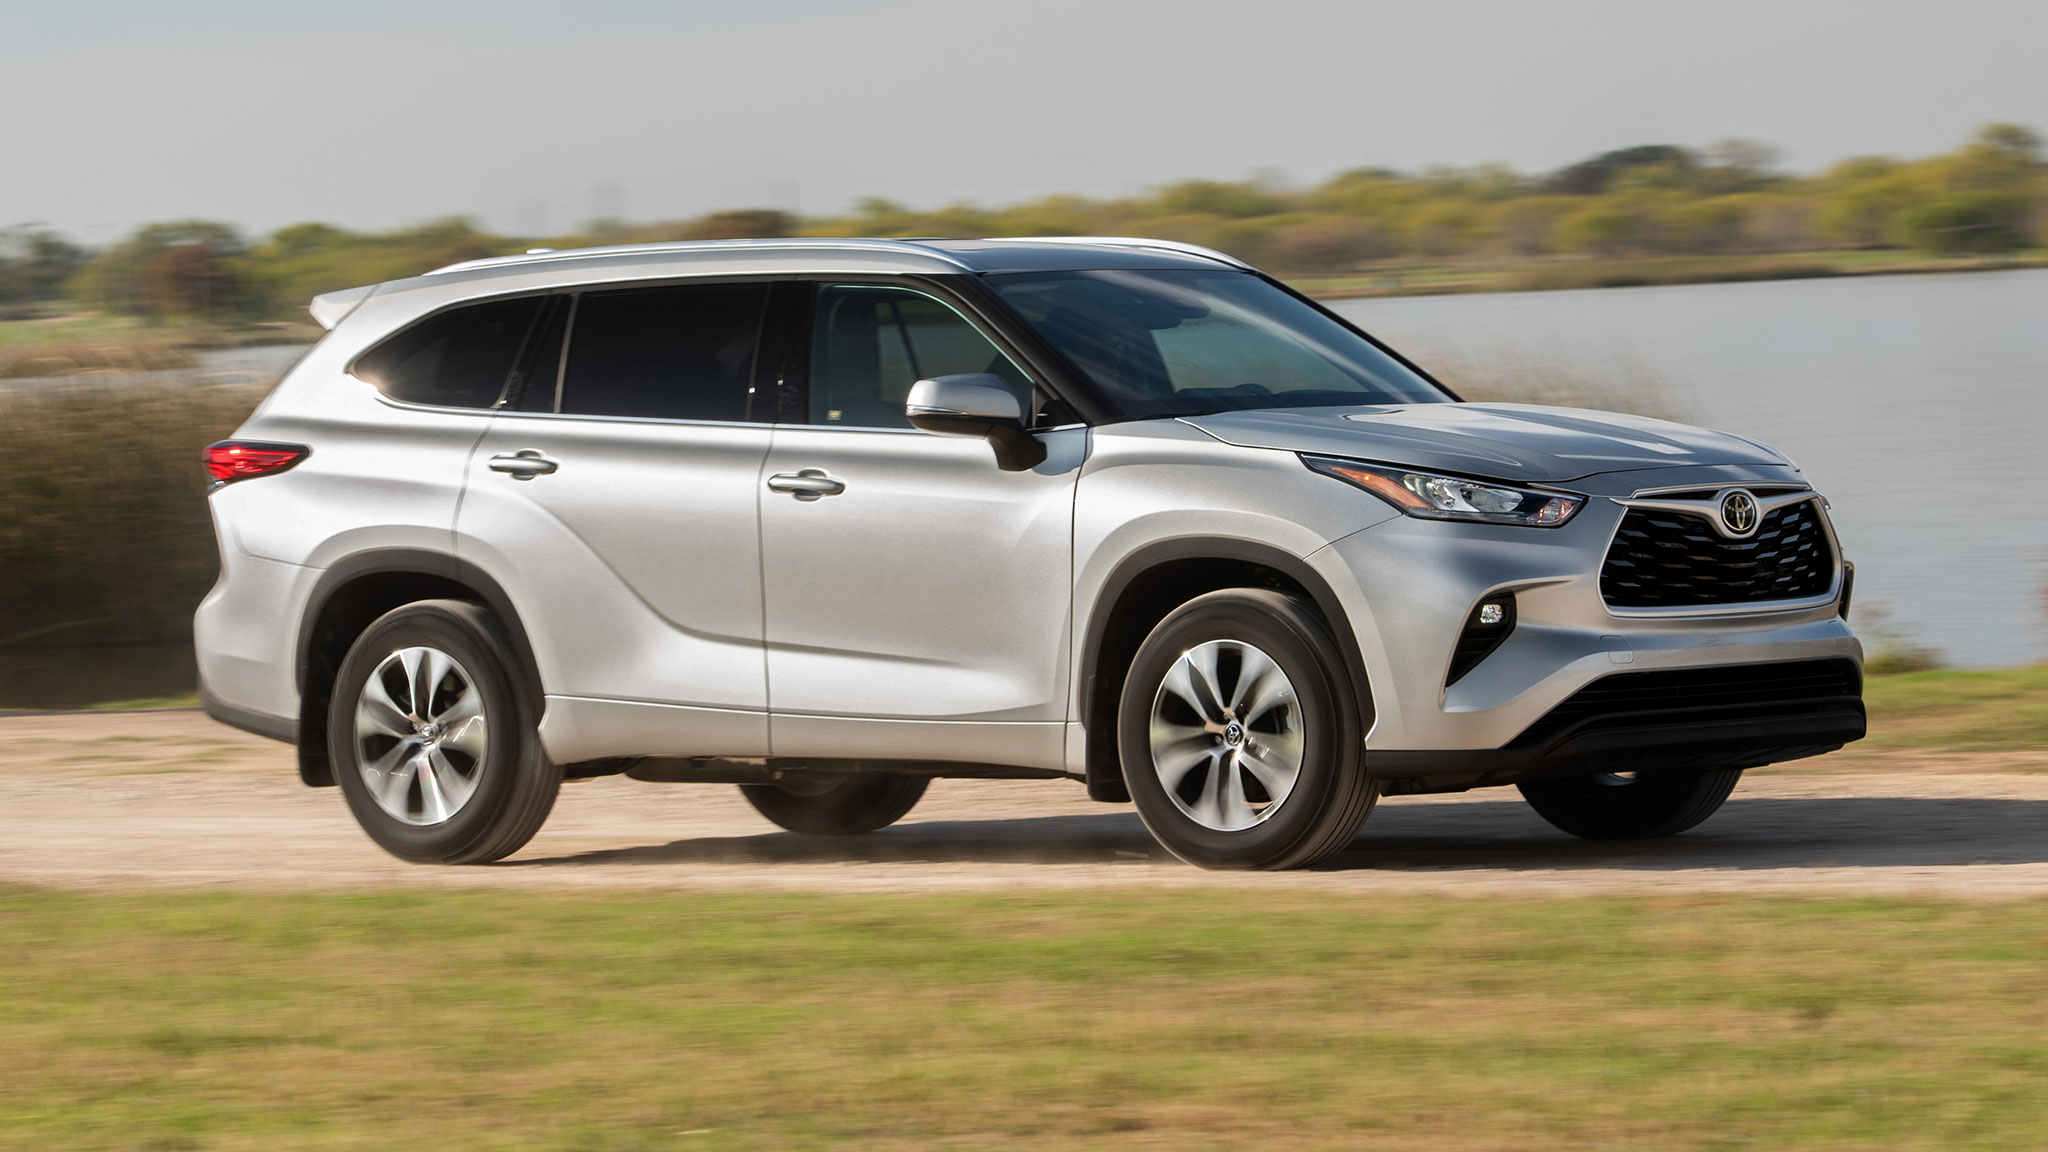 2020 toyota highlander first drive review watch out kia telluride and hyundai palisade 2020 toyota highlander first drive